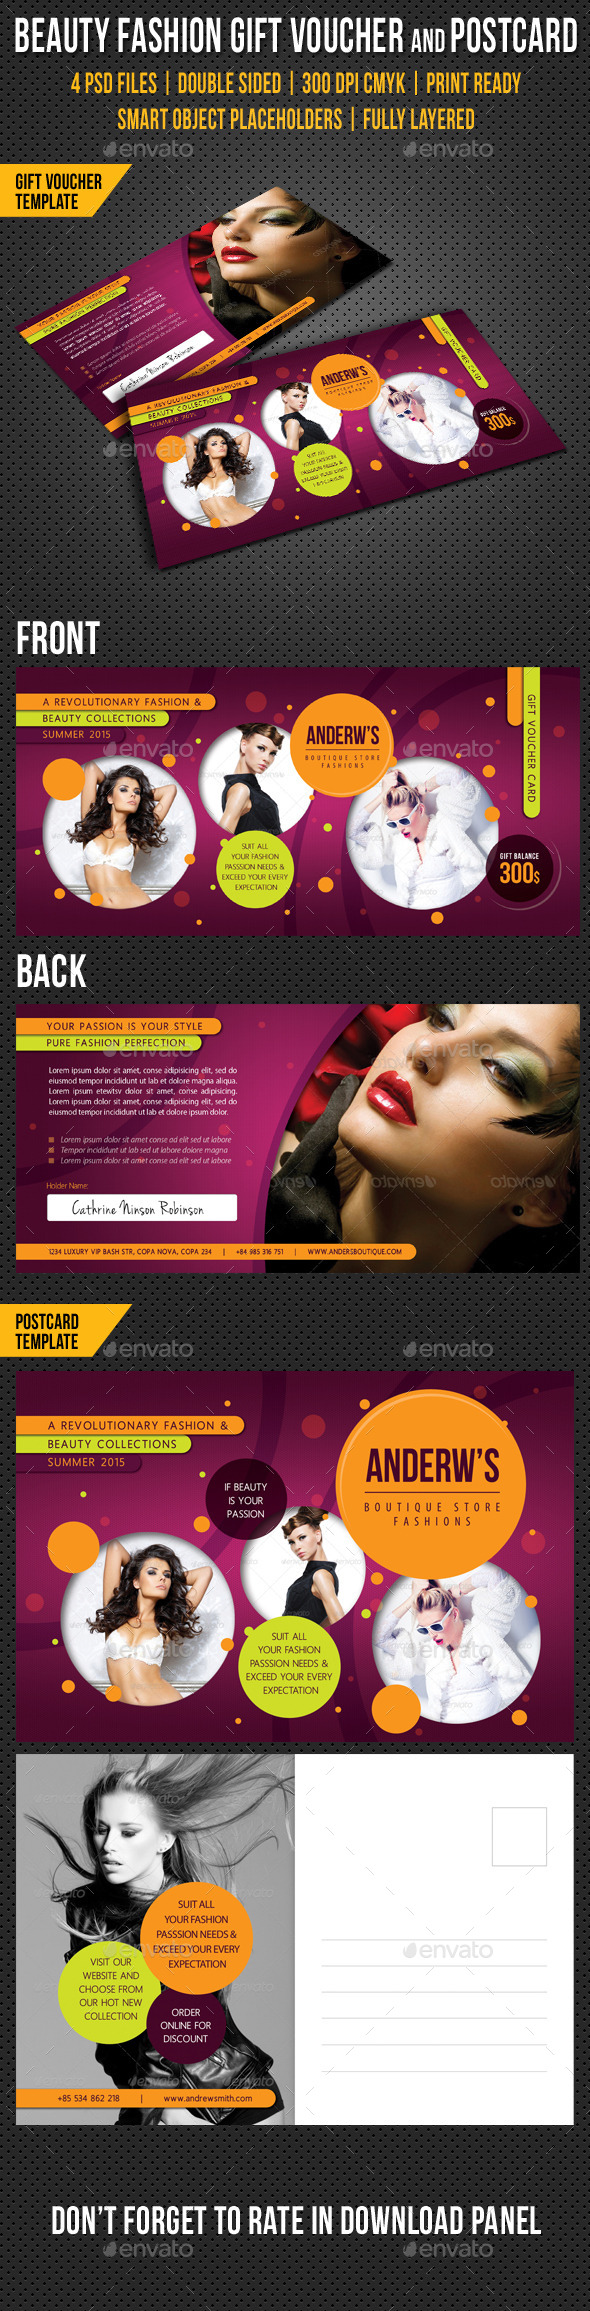 Beauty Fashion Gift Voucher and Postcard V03